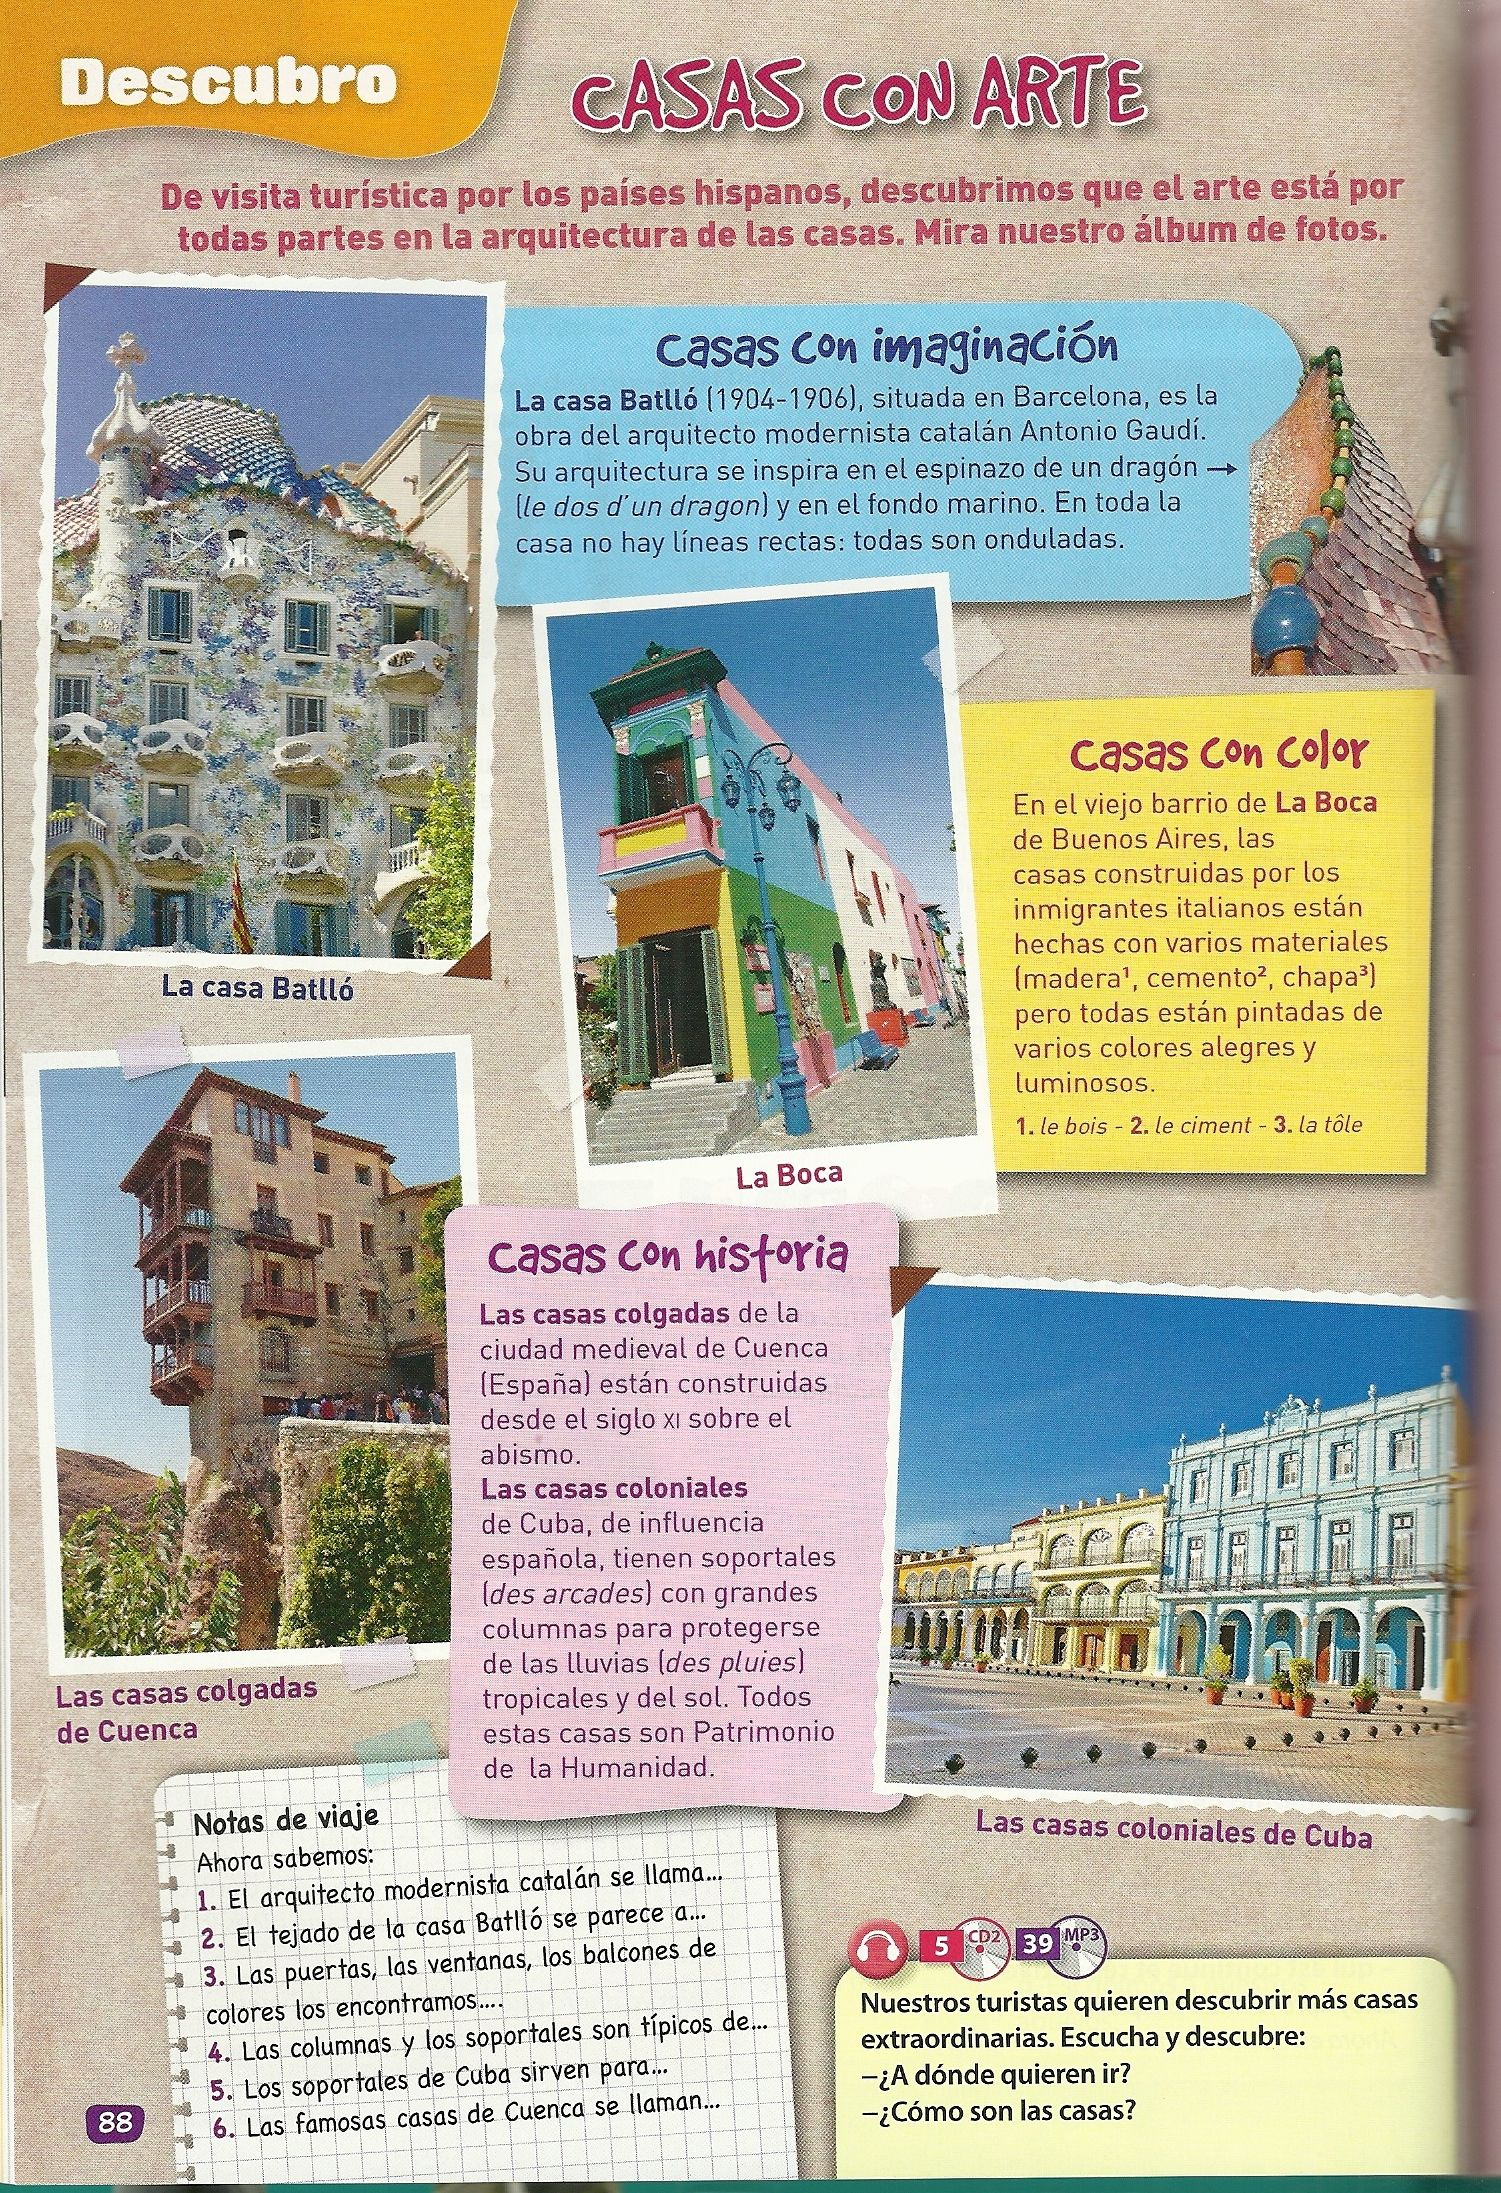 La Arte In Spanish Casas Con Arte Fun Thing To Do In A Travel Journal House